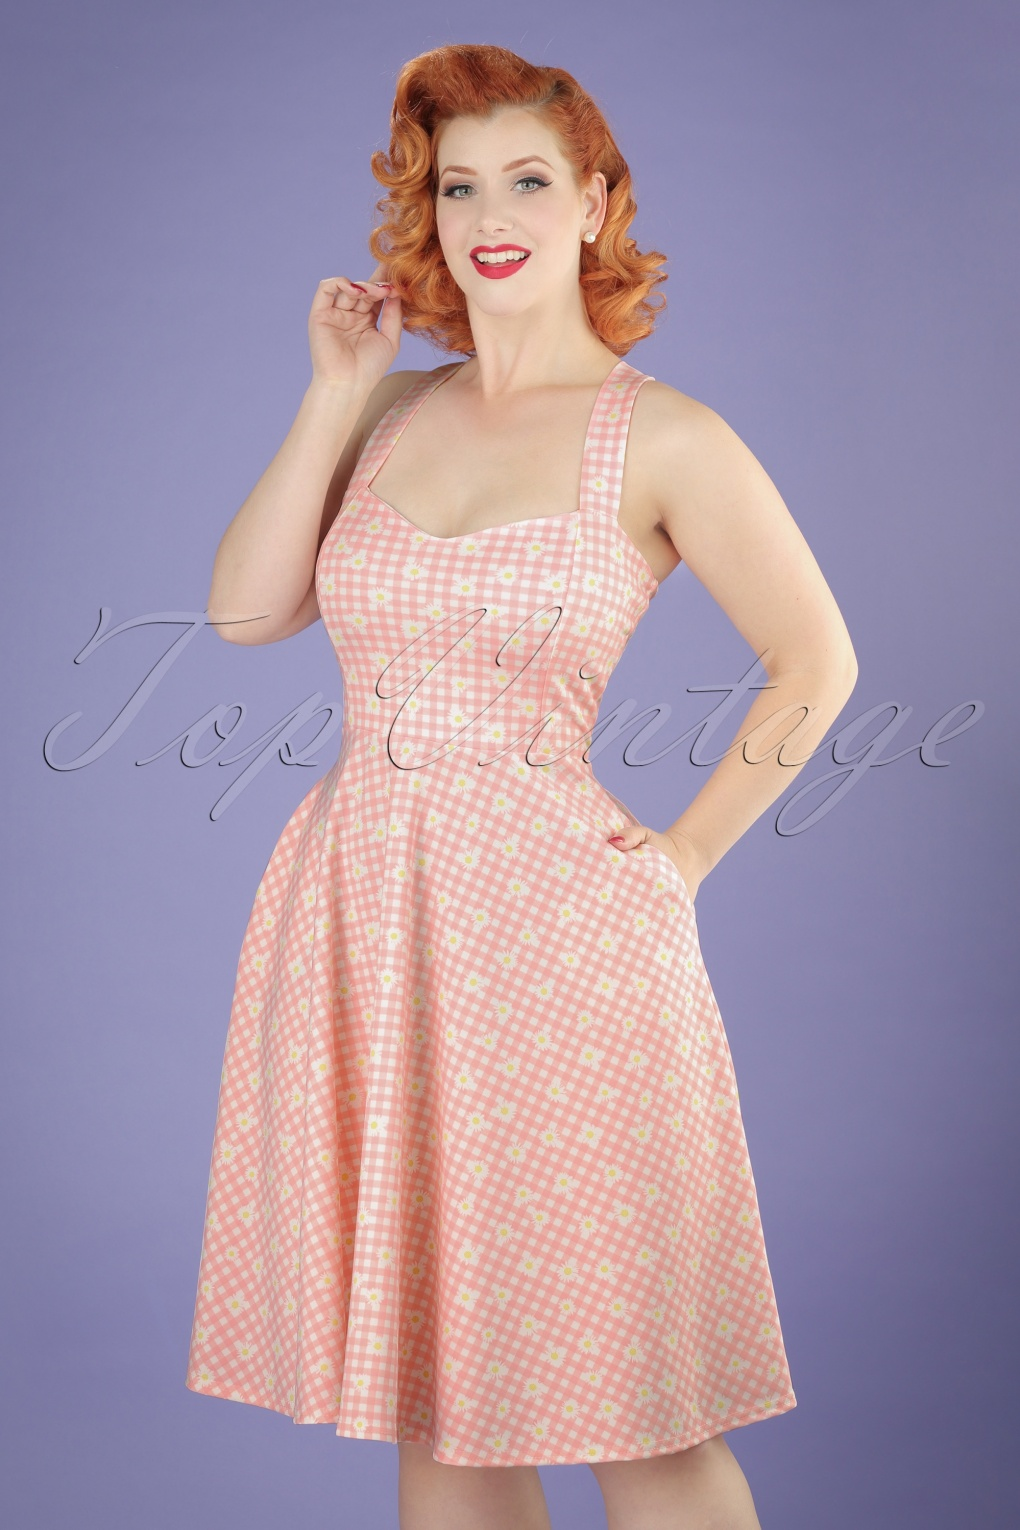 1960s Style Dresses- Retro Inspired Fashion 50s Judith Checked Swing Dress in Pink and White £22.73 AT vintagedancer.com